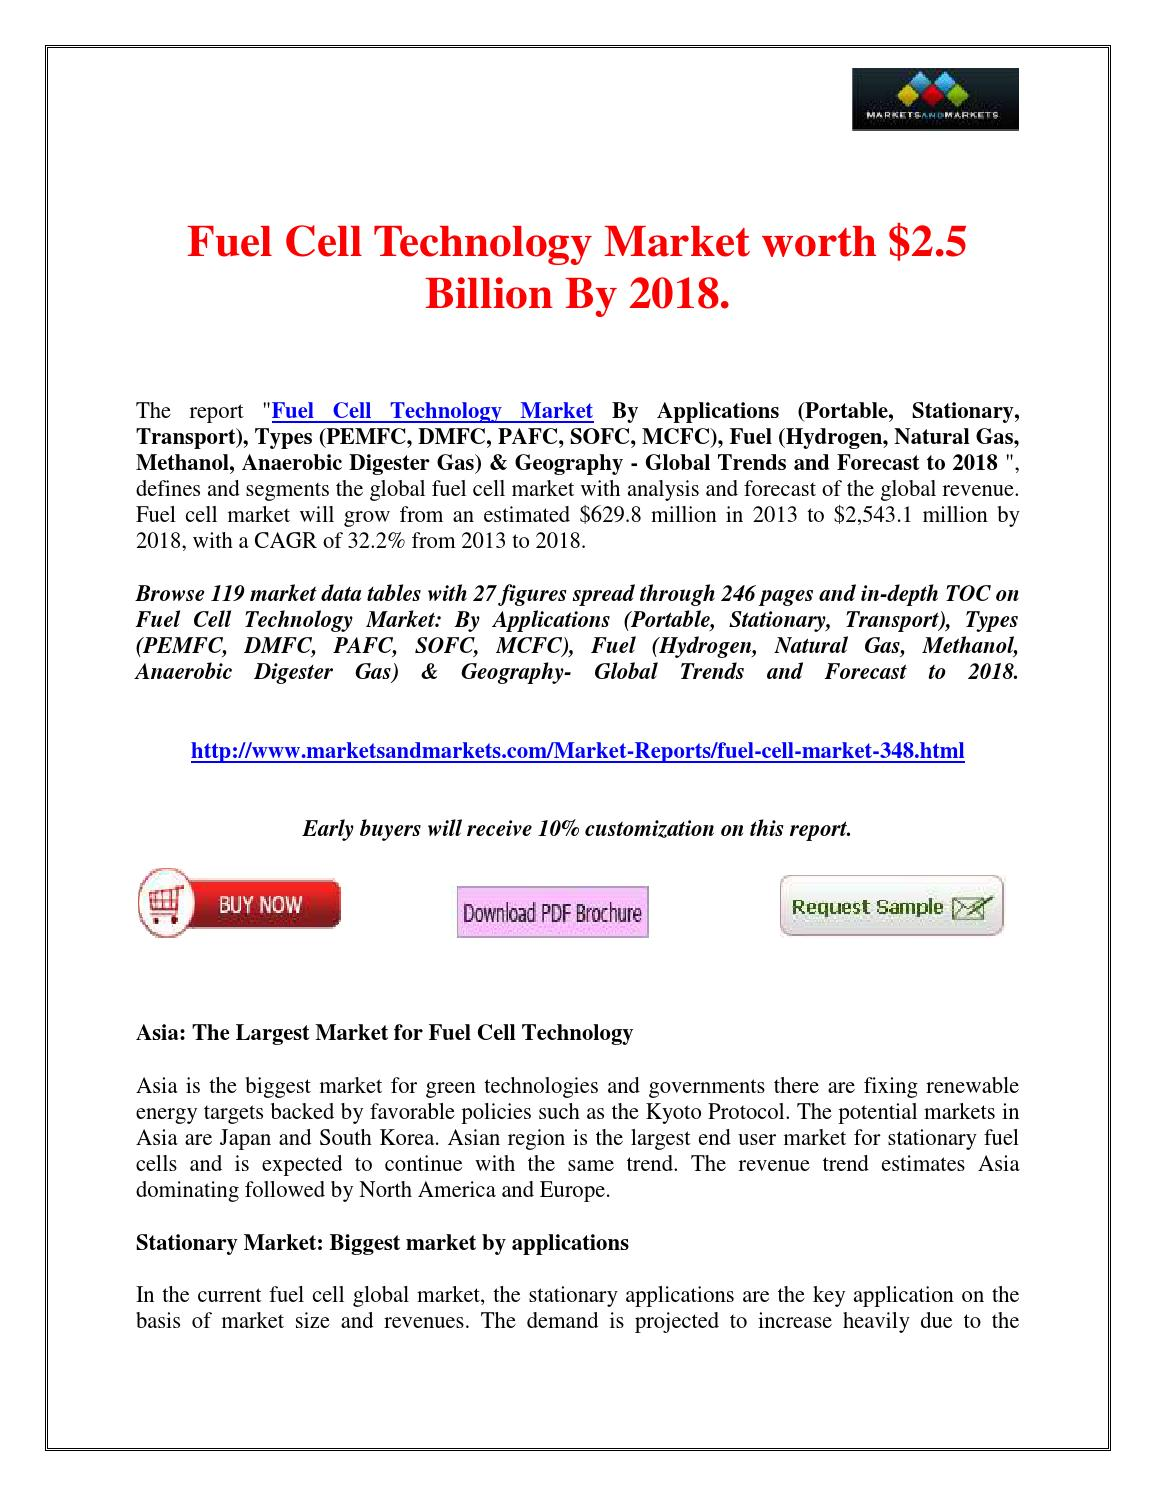 Fuel Cell Technology Market would be worth $2 5 Billion